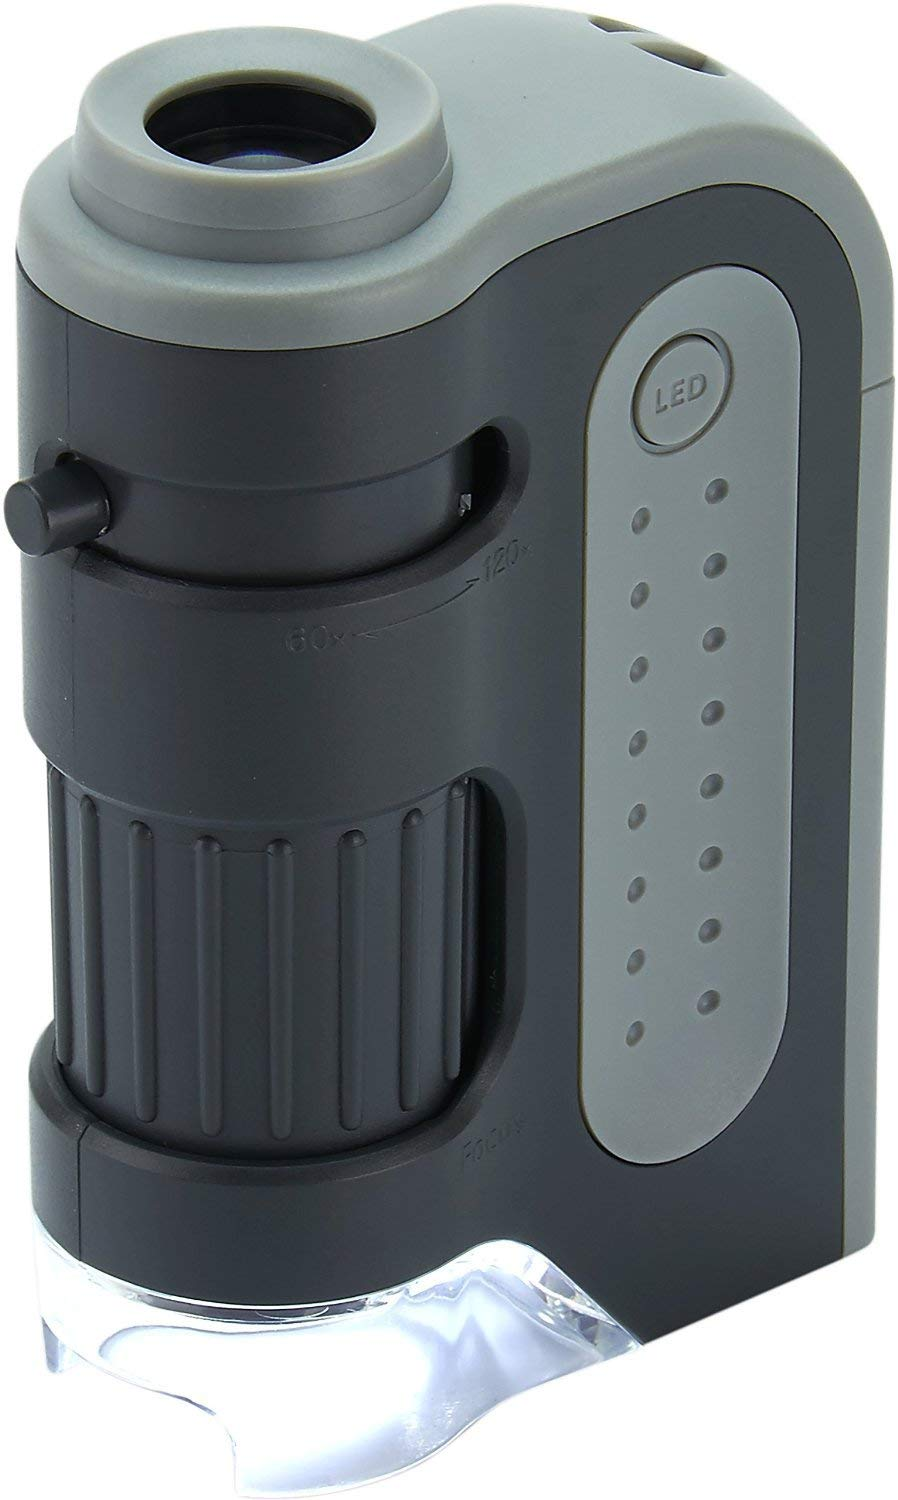 Carson MicroBrite Plus 60x-120x LED Lighted Zoom Pocket Microscope with Aspheric Lens System